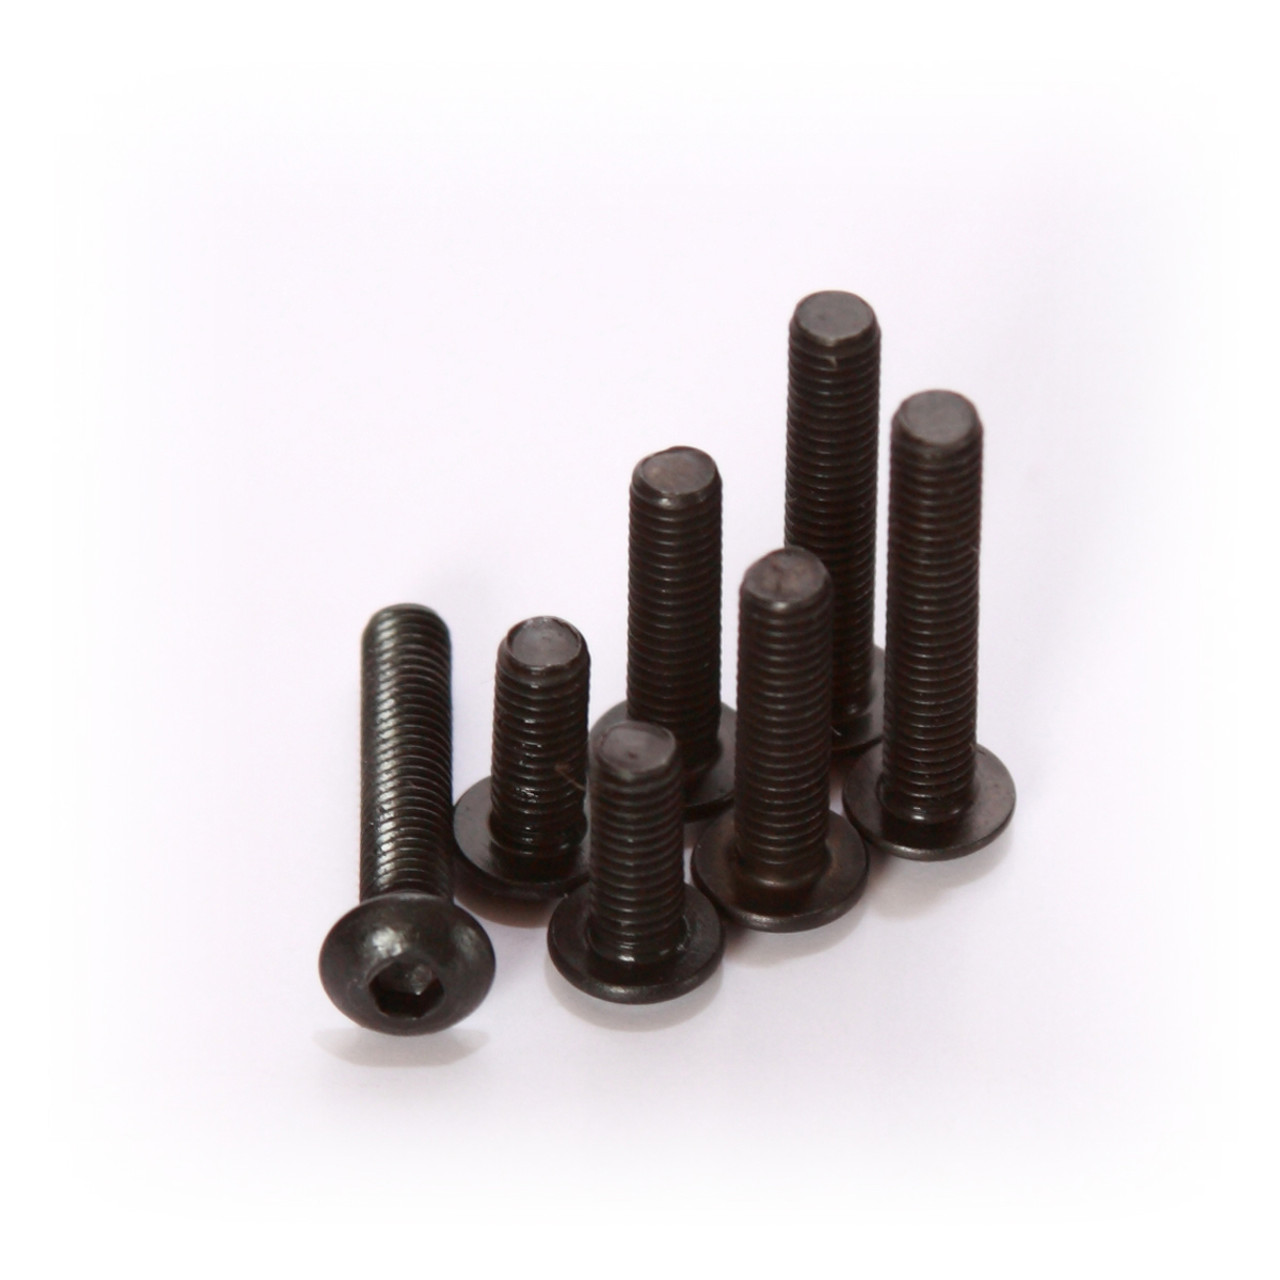 Hardware 3x4 mm BHSC Screws (10 Pack)